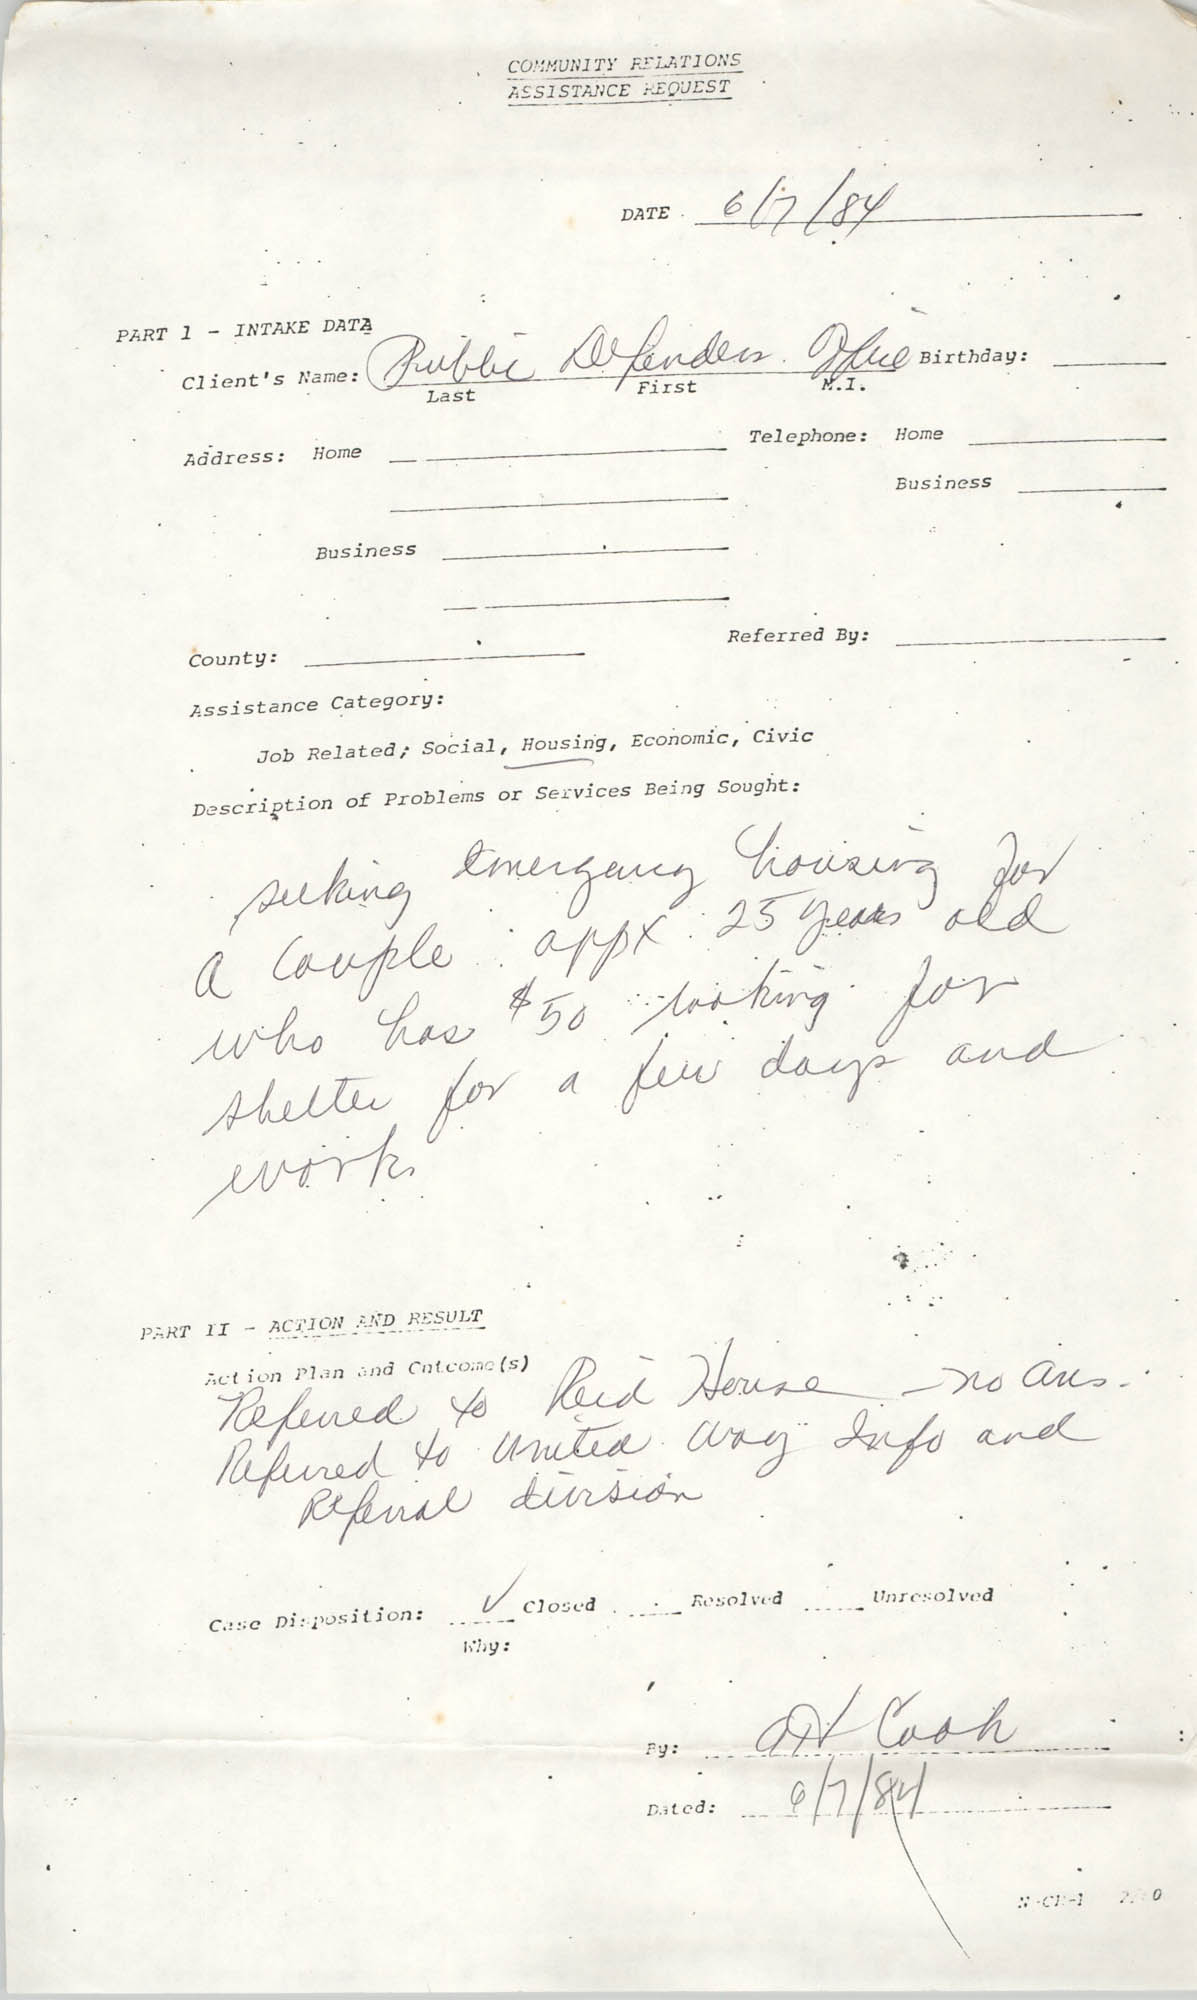 Community Relations Assistance Request, June 7, 1984